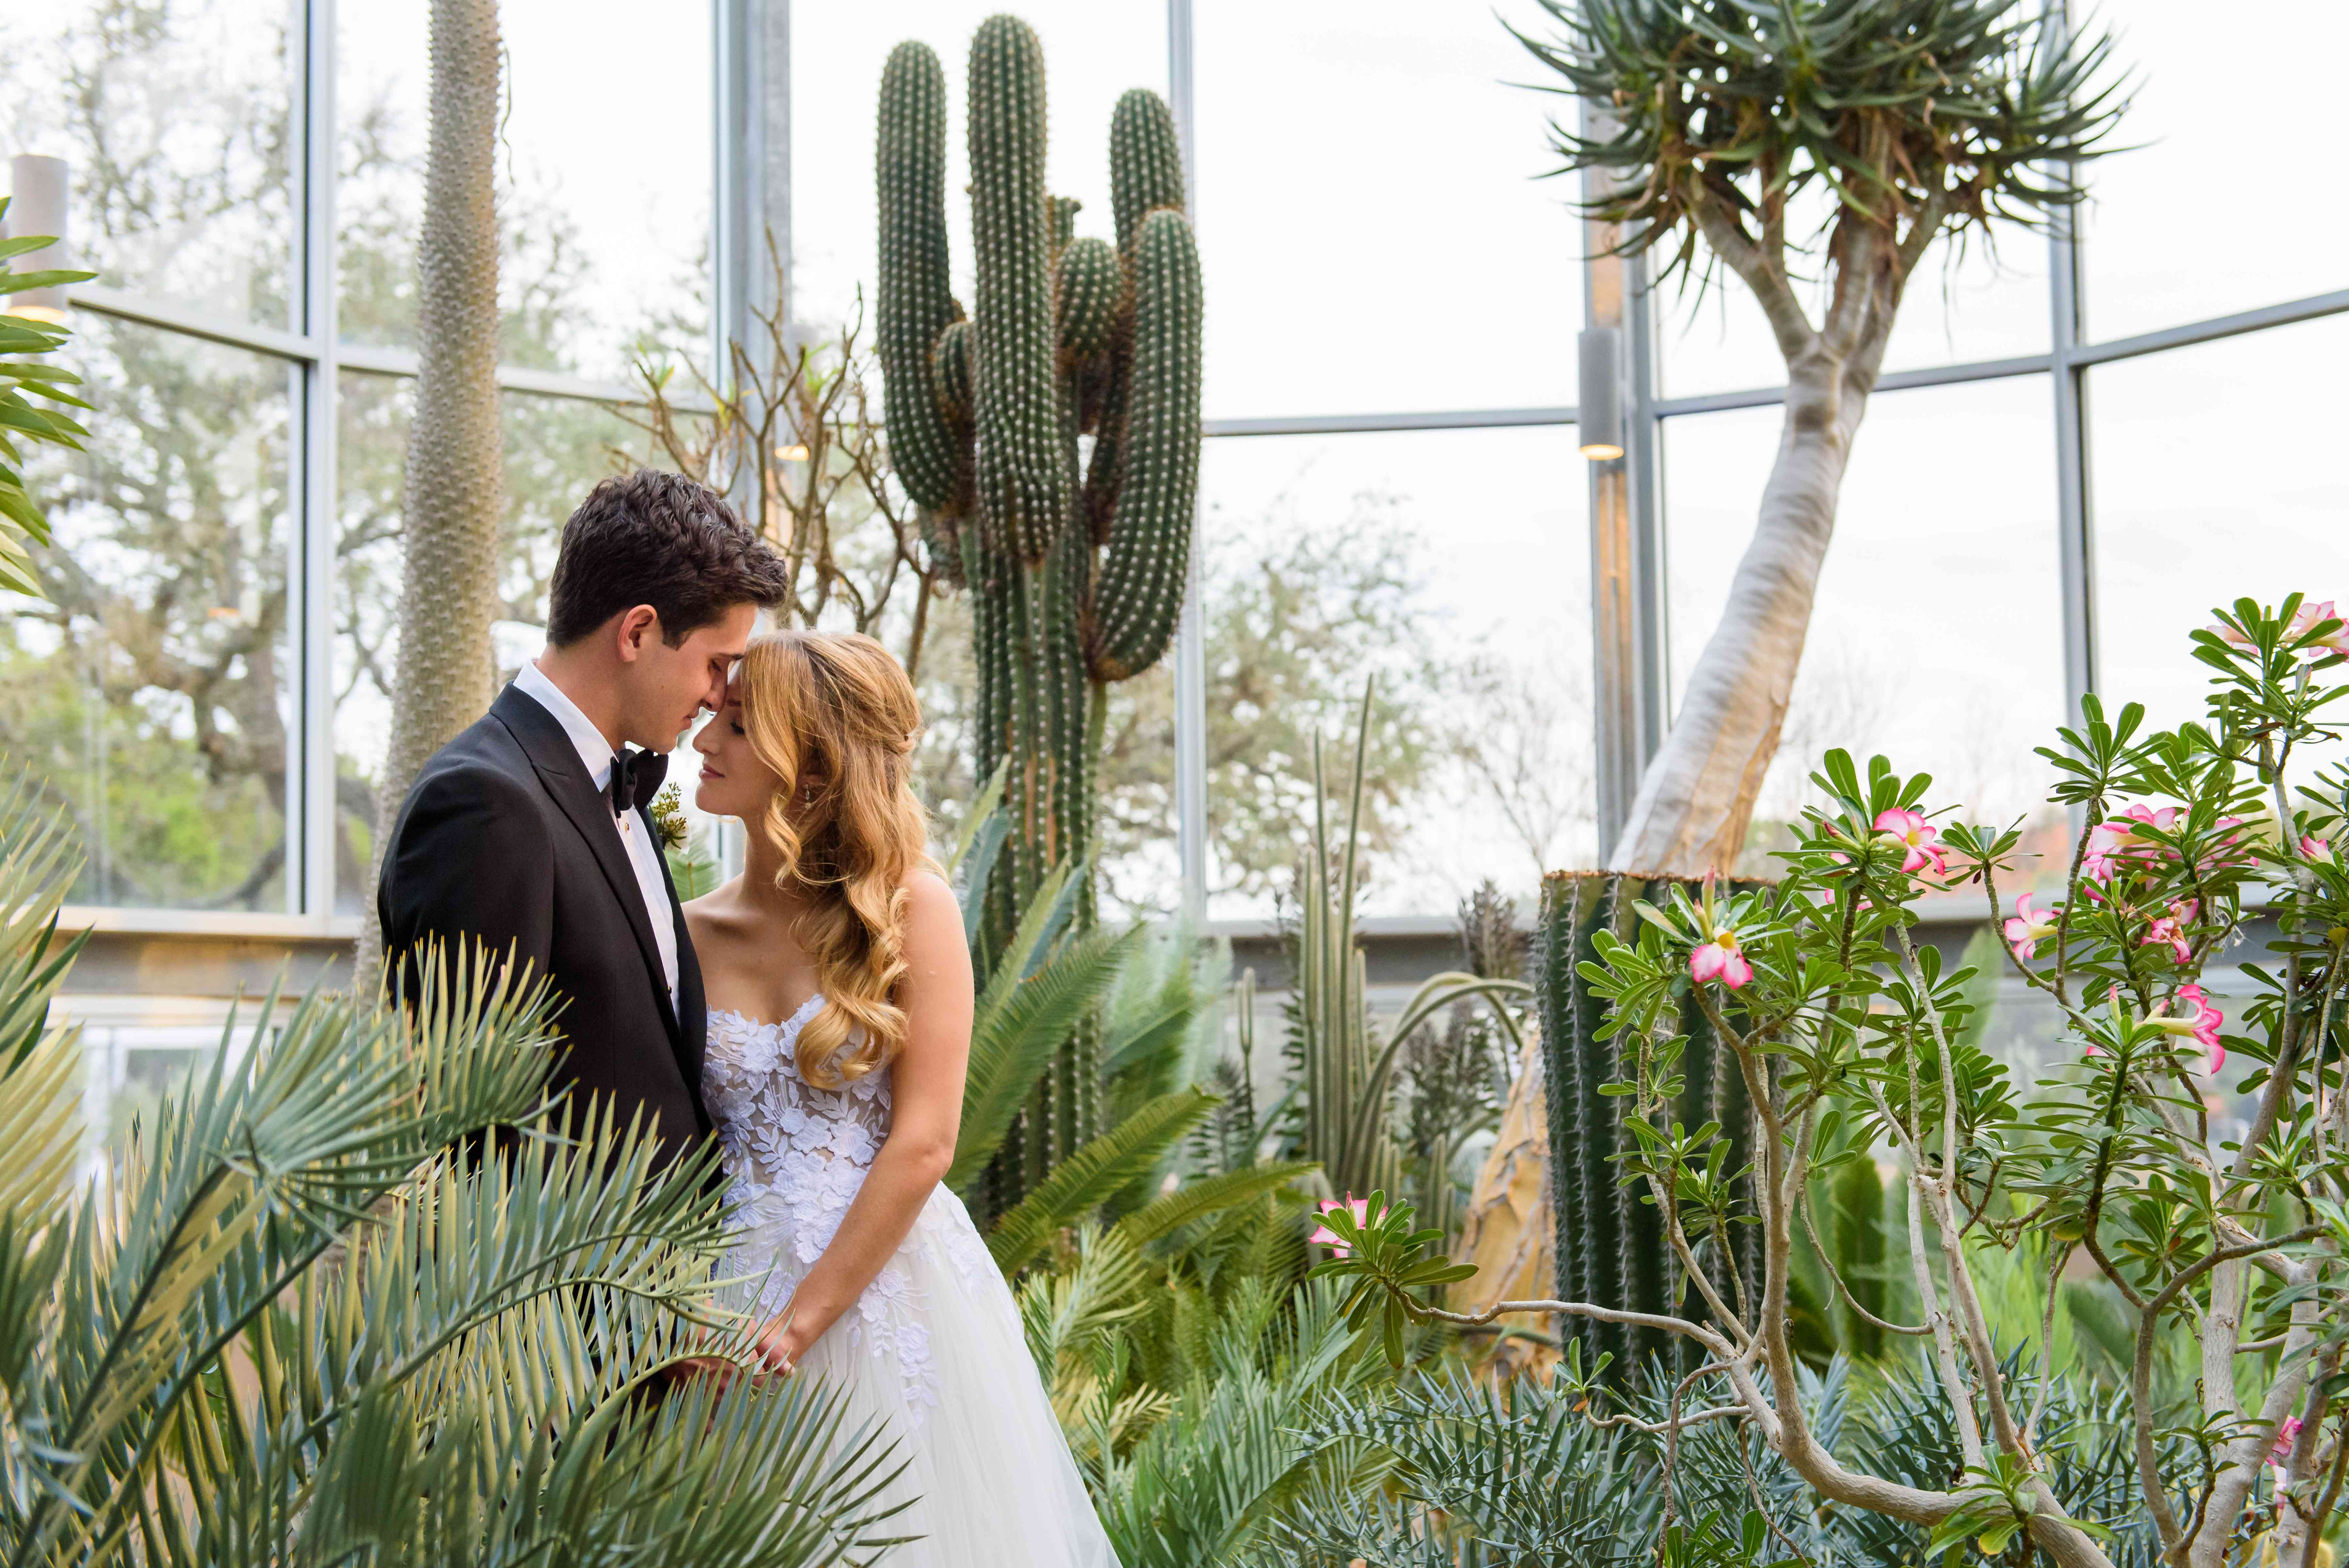 Couple hugging in their wedding photos at The Greenhouse at Driftwood in Texas